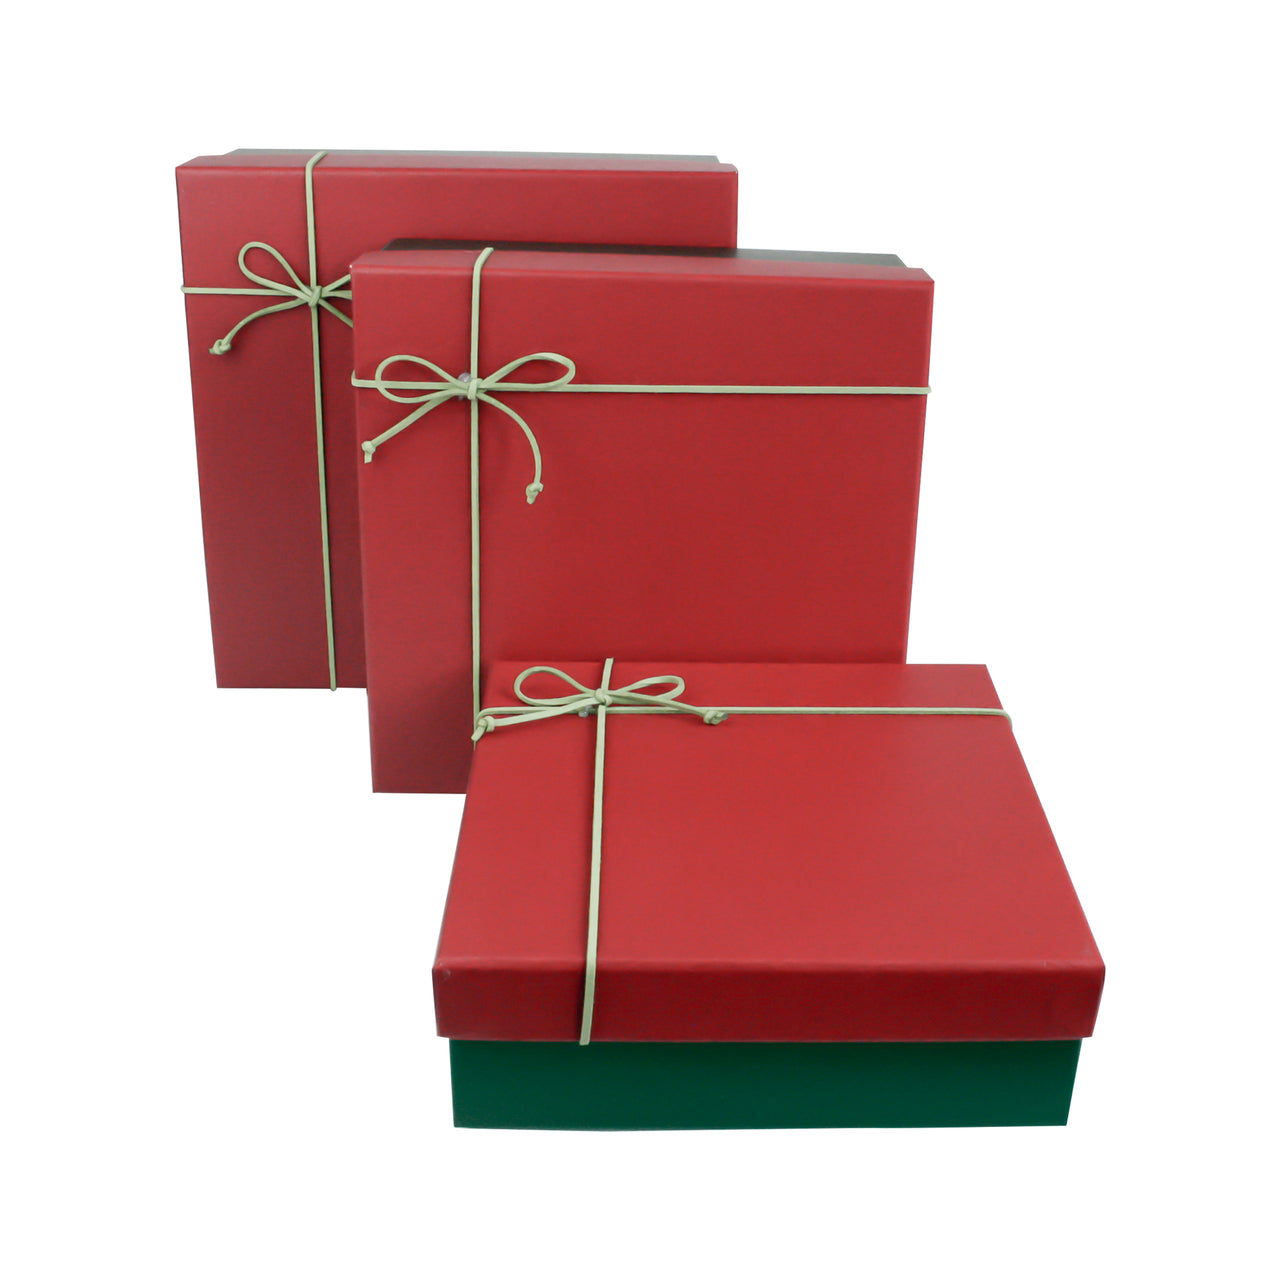 Dark Green & Red Square Gift Box - Set Of 3